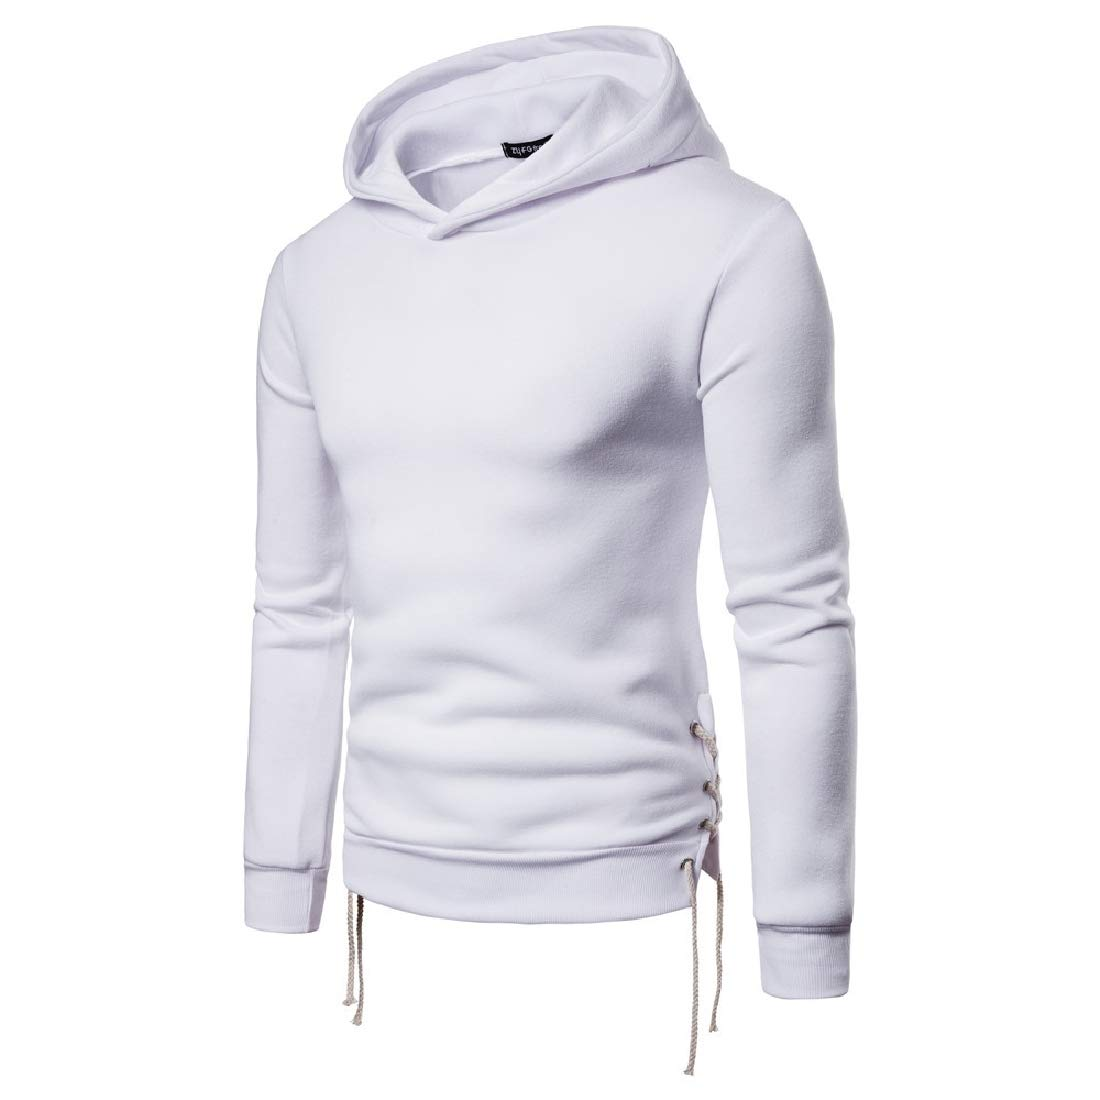 Fseason-Men Pullover Hoodie Casual Solid Colored Jacket Sweatshirts